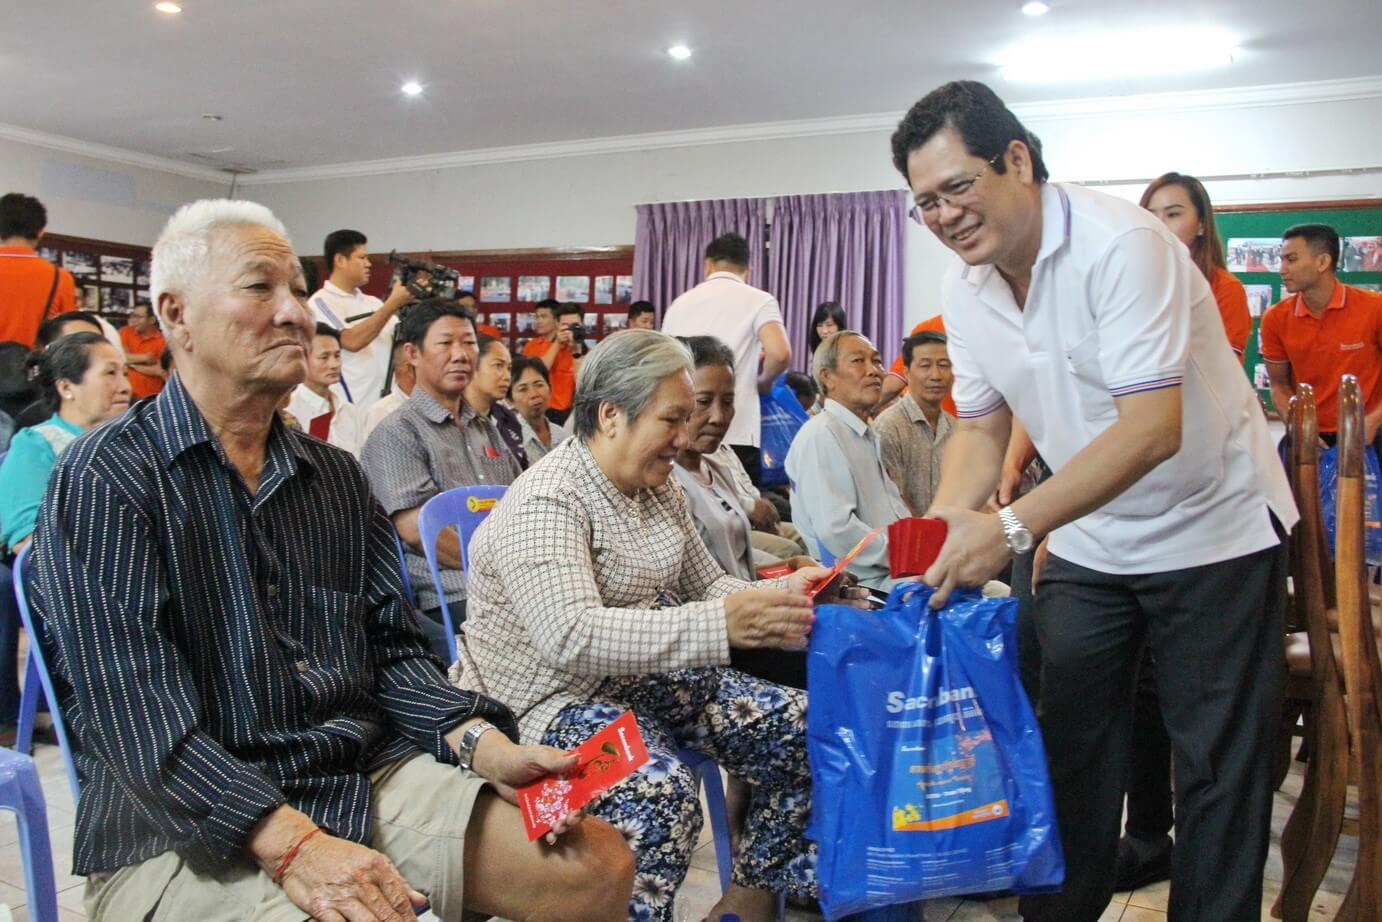 Deputy CEO of Sacombank presented gifts to people of Vietnamese